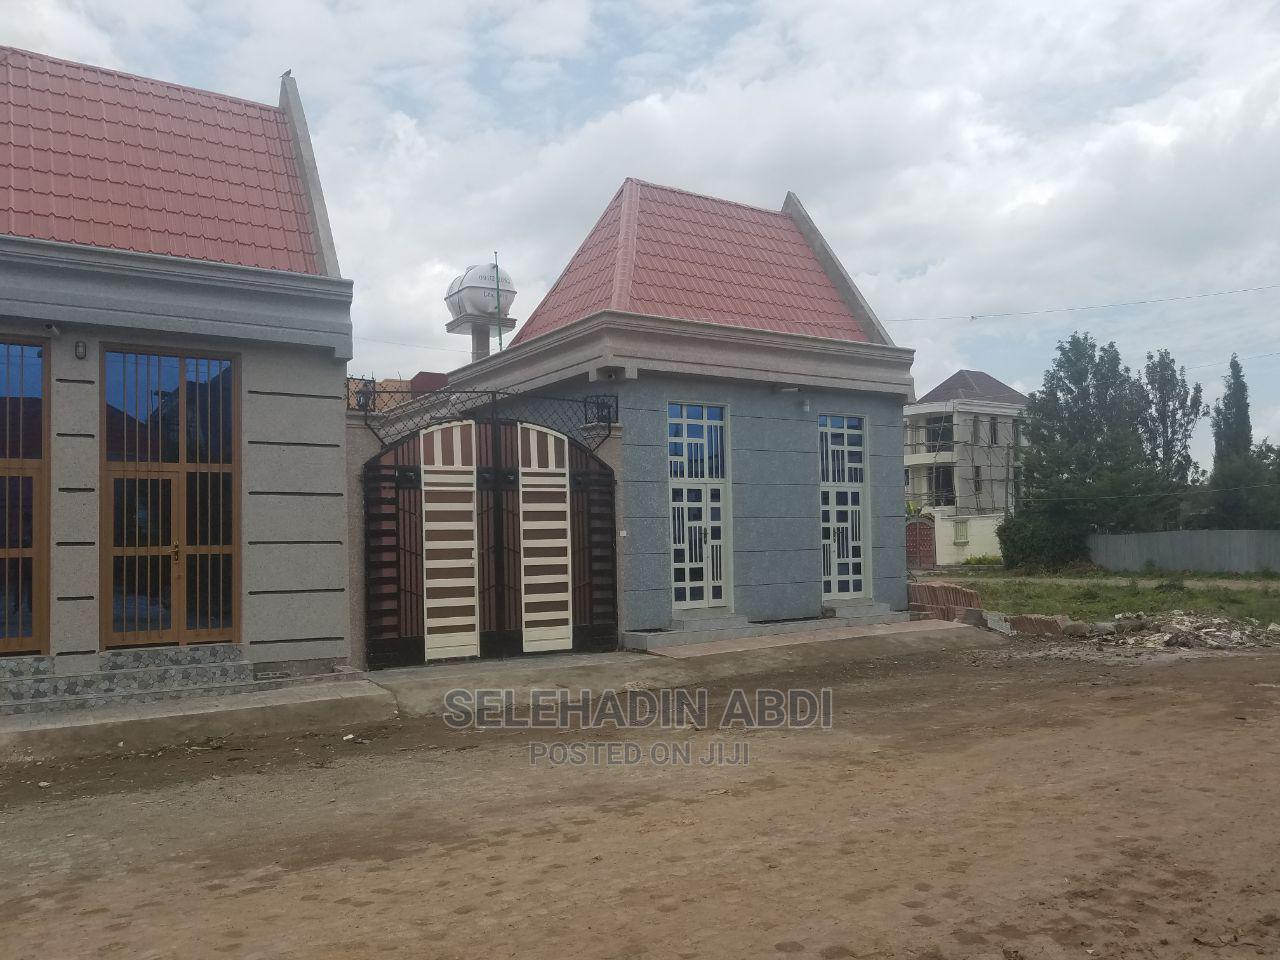 Furnished 6bdrm House in ዱከም ከተማ, East Shewa for Sale